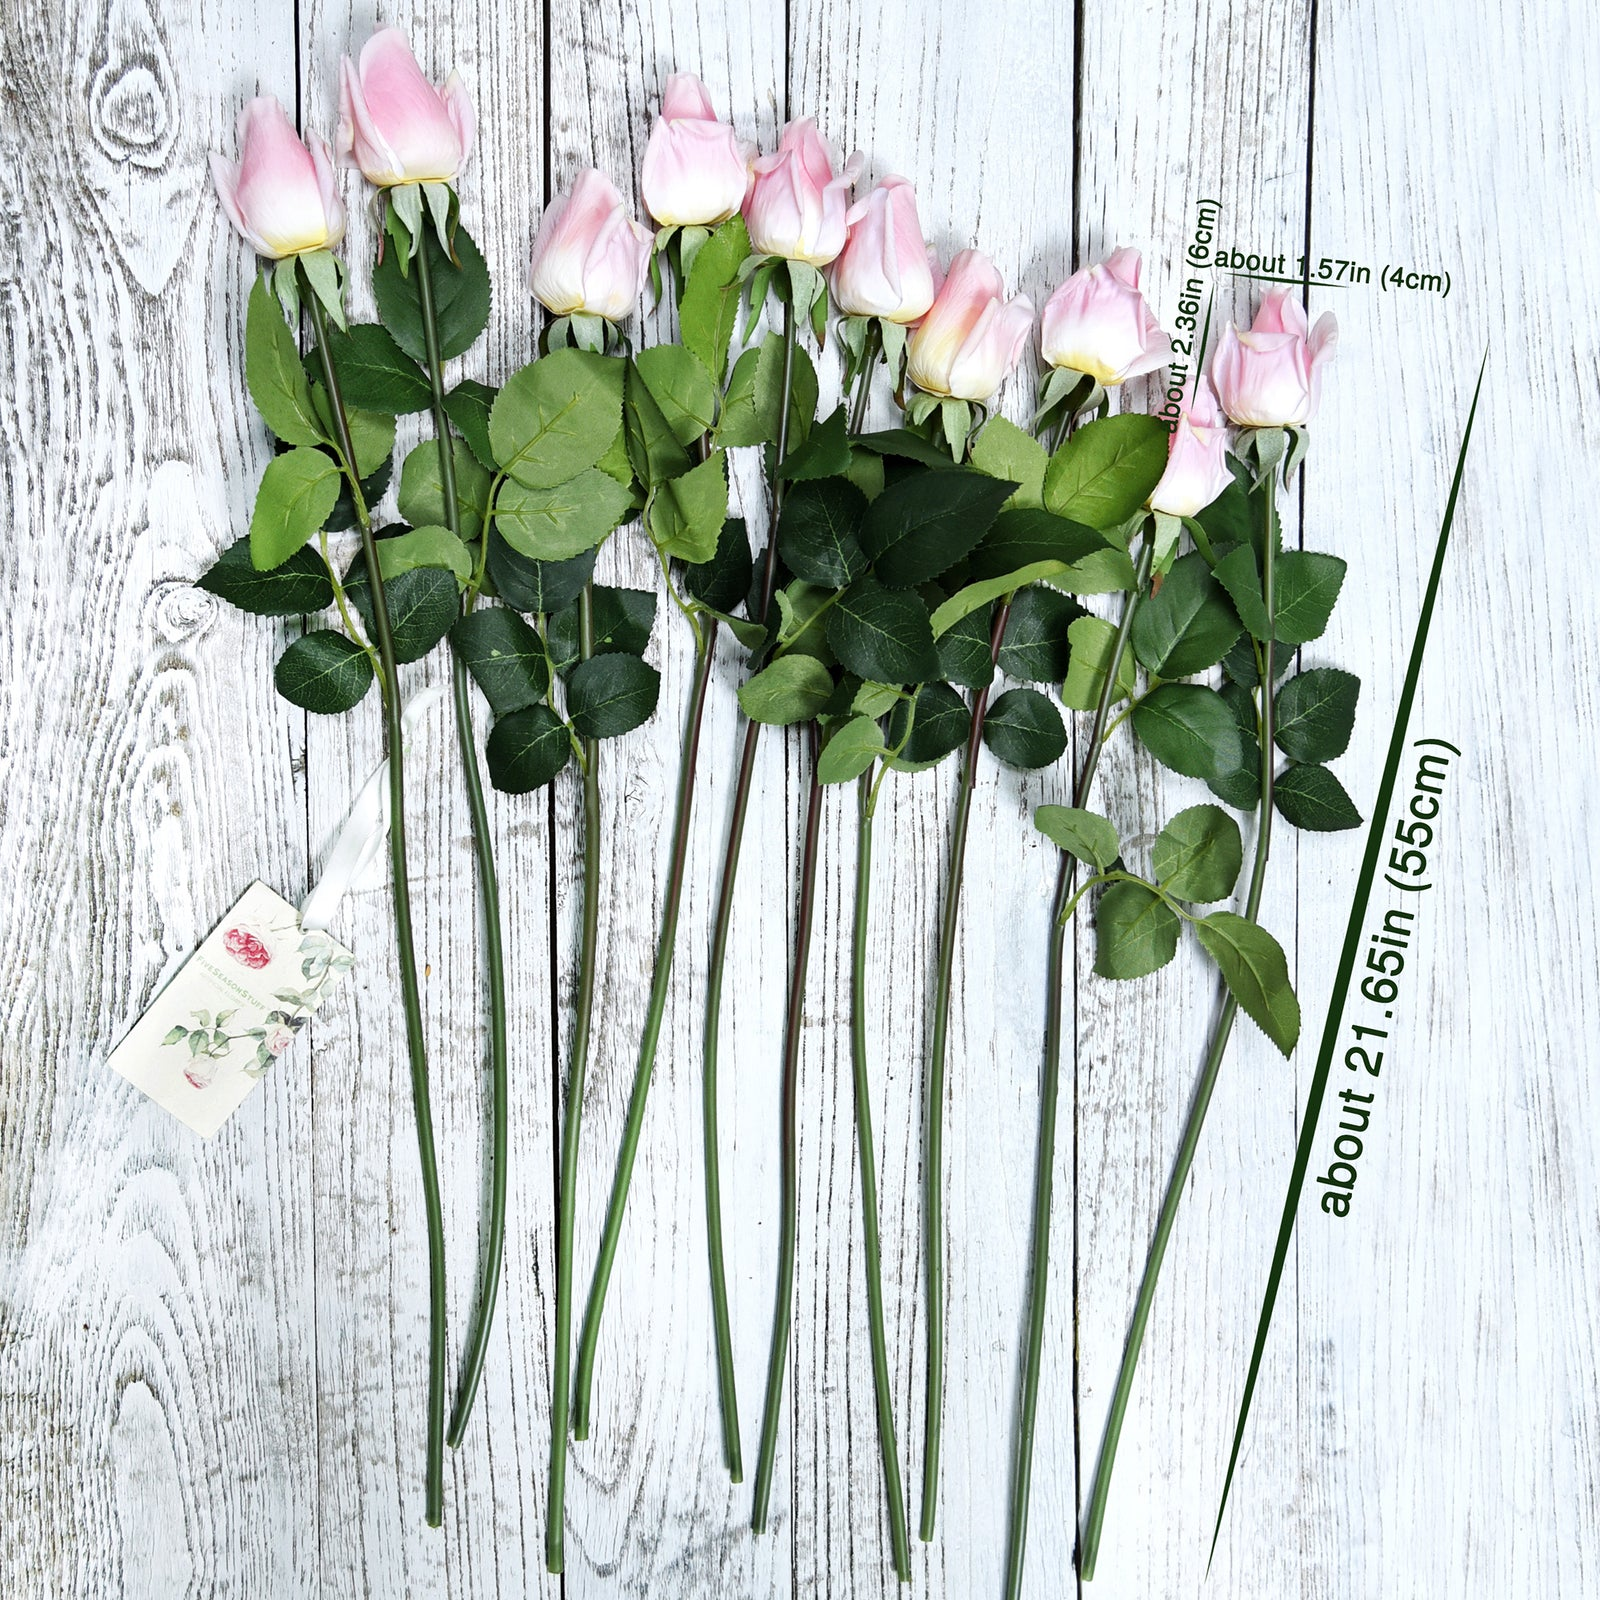 FiveSeasonStuff 10 Long Stems (53cm) of Real Touch Silk Roses 'Petals Feel and Look like Fresh Roses' Artificial Flower Bouquet Floral Arrangement, Perfect for Wedding, Bridal, Party, Home, Office Décor DIY